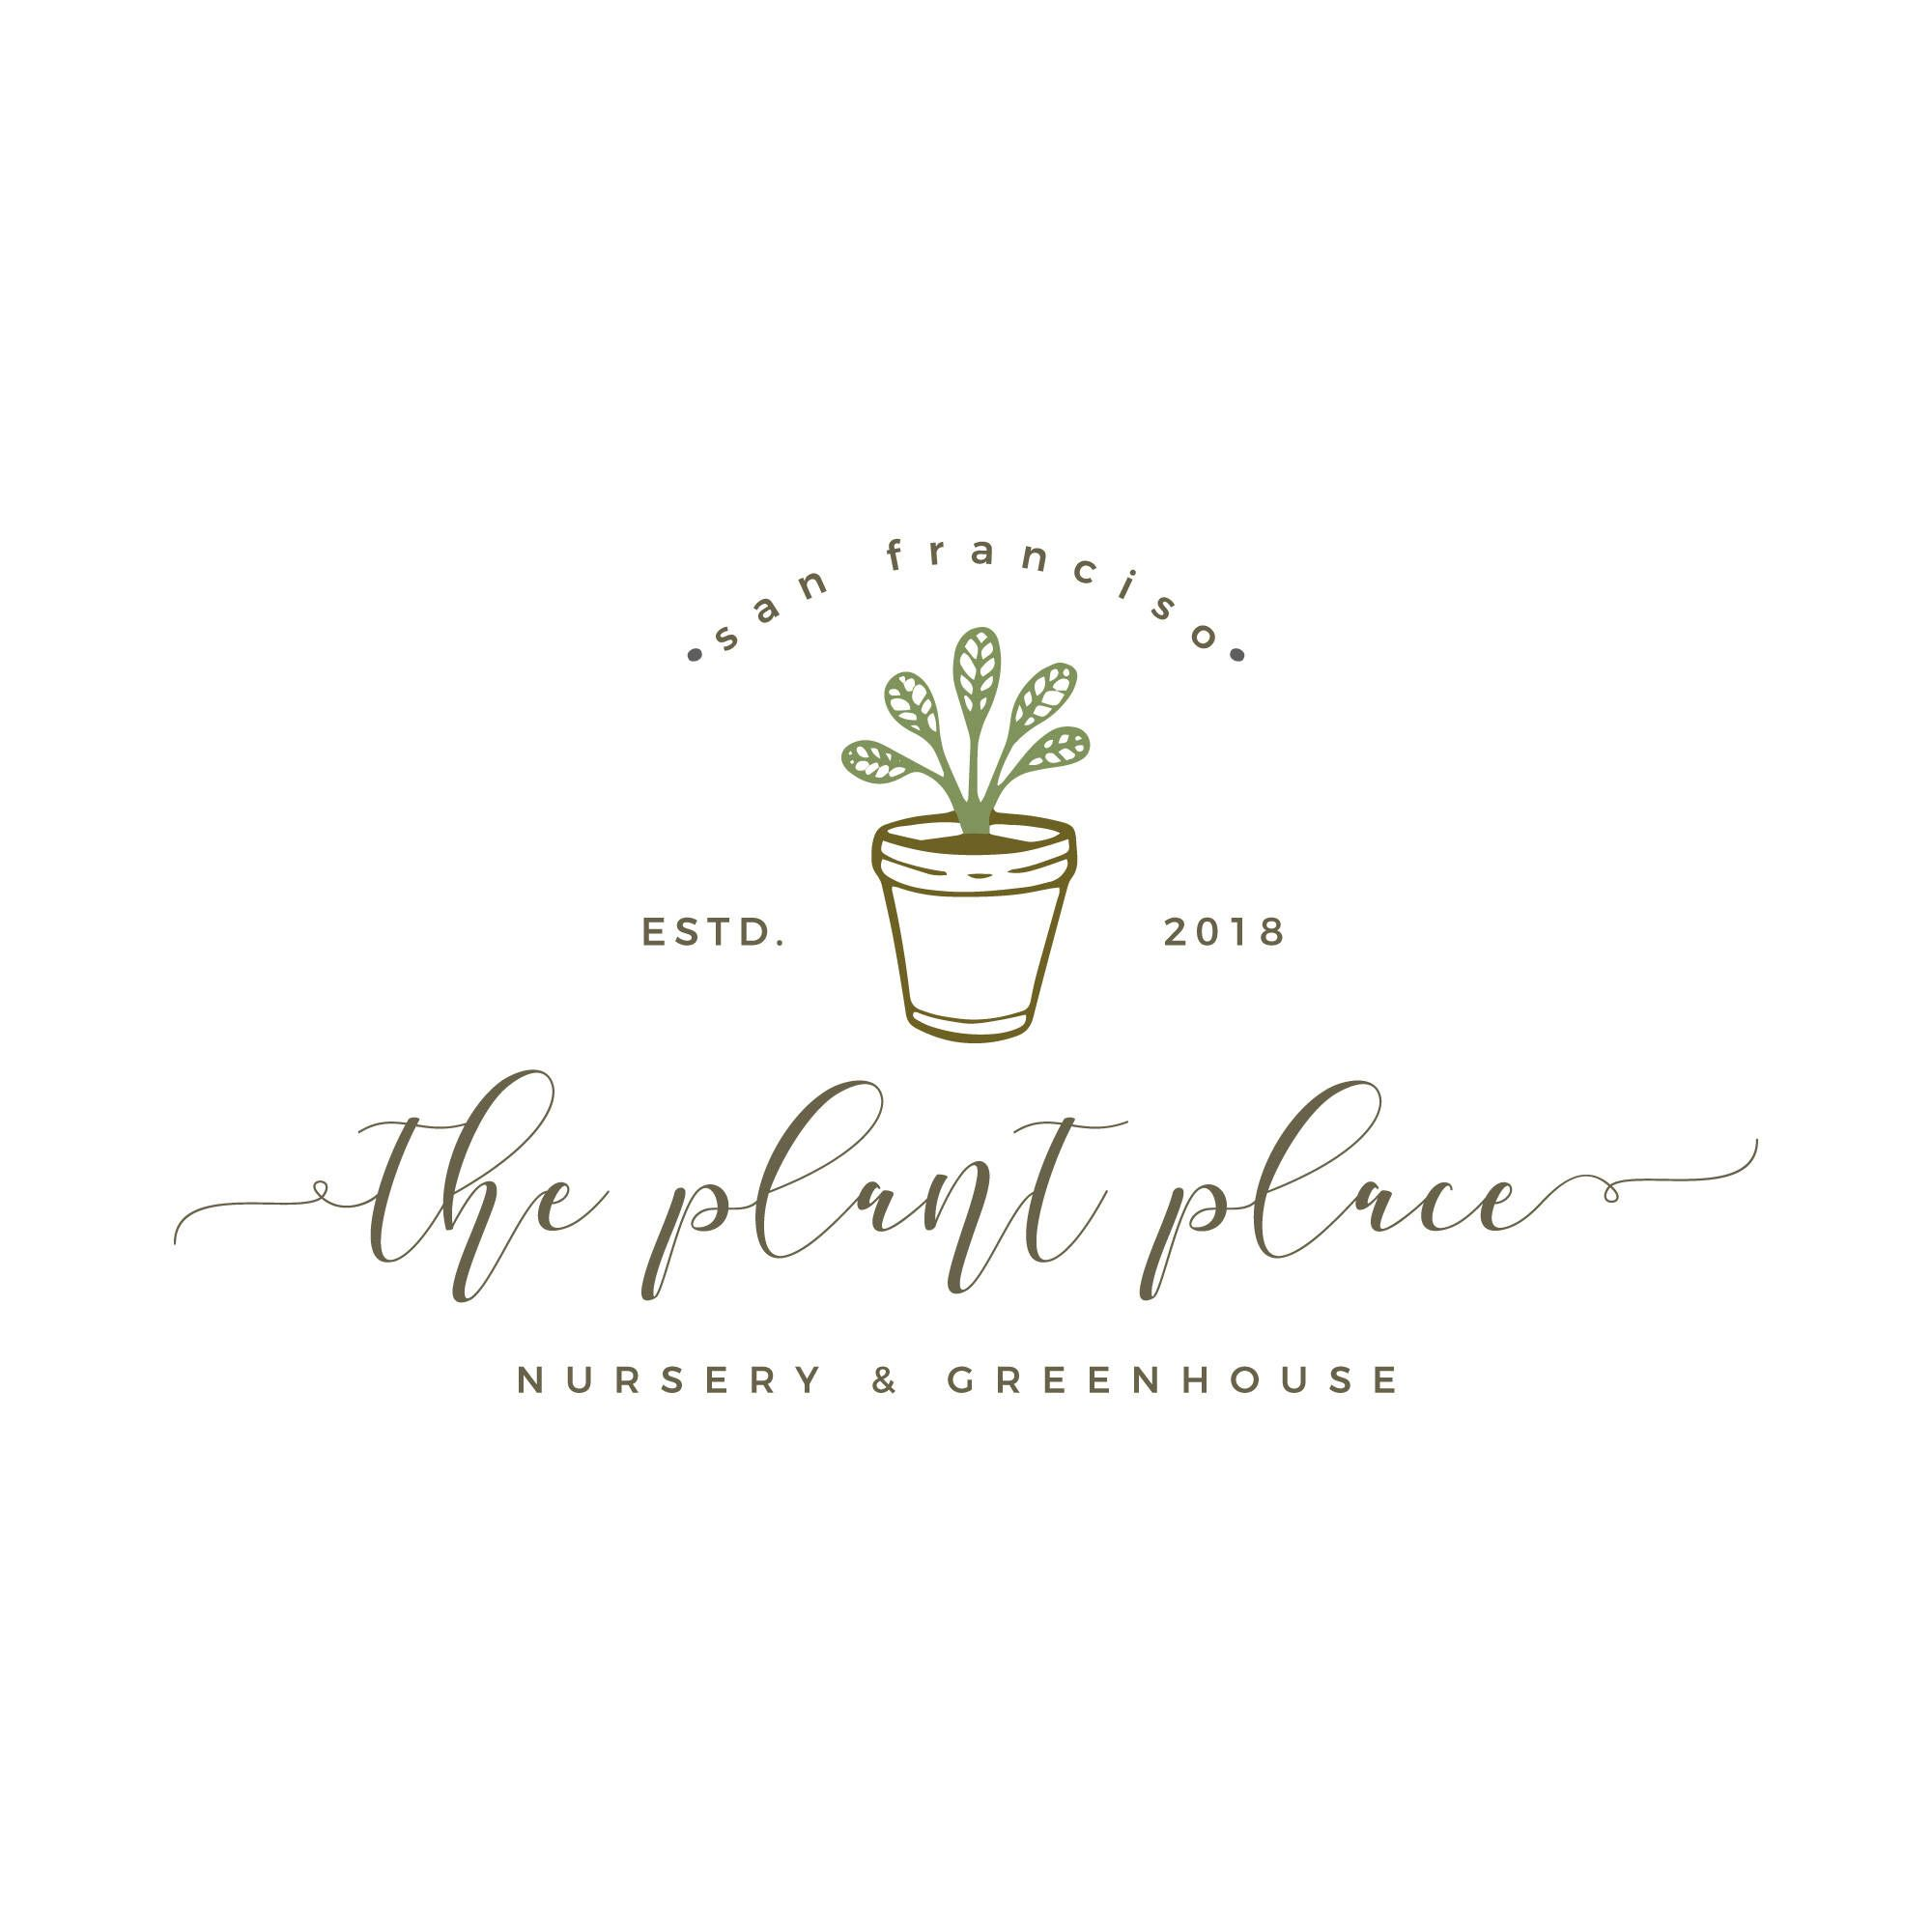 Plant Logo, Succulent Logo, Farmhouse Logo, Greenhouse Logo, Home Decor Brand, Florist Brand, Hand Drawn Premade Logo, Garden Brand is part of Home garden Logo - or color adjustments can be made after receiving initial proof  Final files will be emailed upon your approval  ~~ i m p o r t a n t i n f o r m a t i o n ~~  font changes not included in listing  font files are not included  this is a digital item  no physical item will be shipped to you  design copyright remains with Blushing Magpie Designs  logo design is not a custom creation and can be resold ©Blushing Magpie Design Feel free to contact me with any questions!